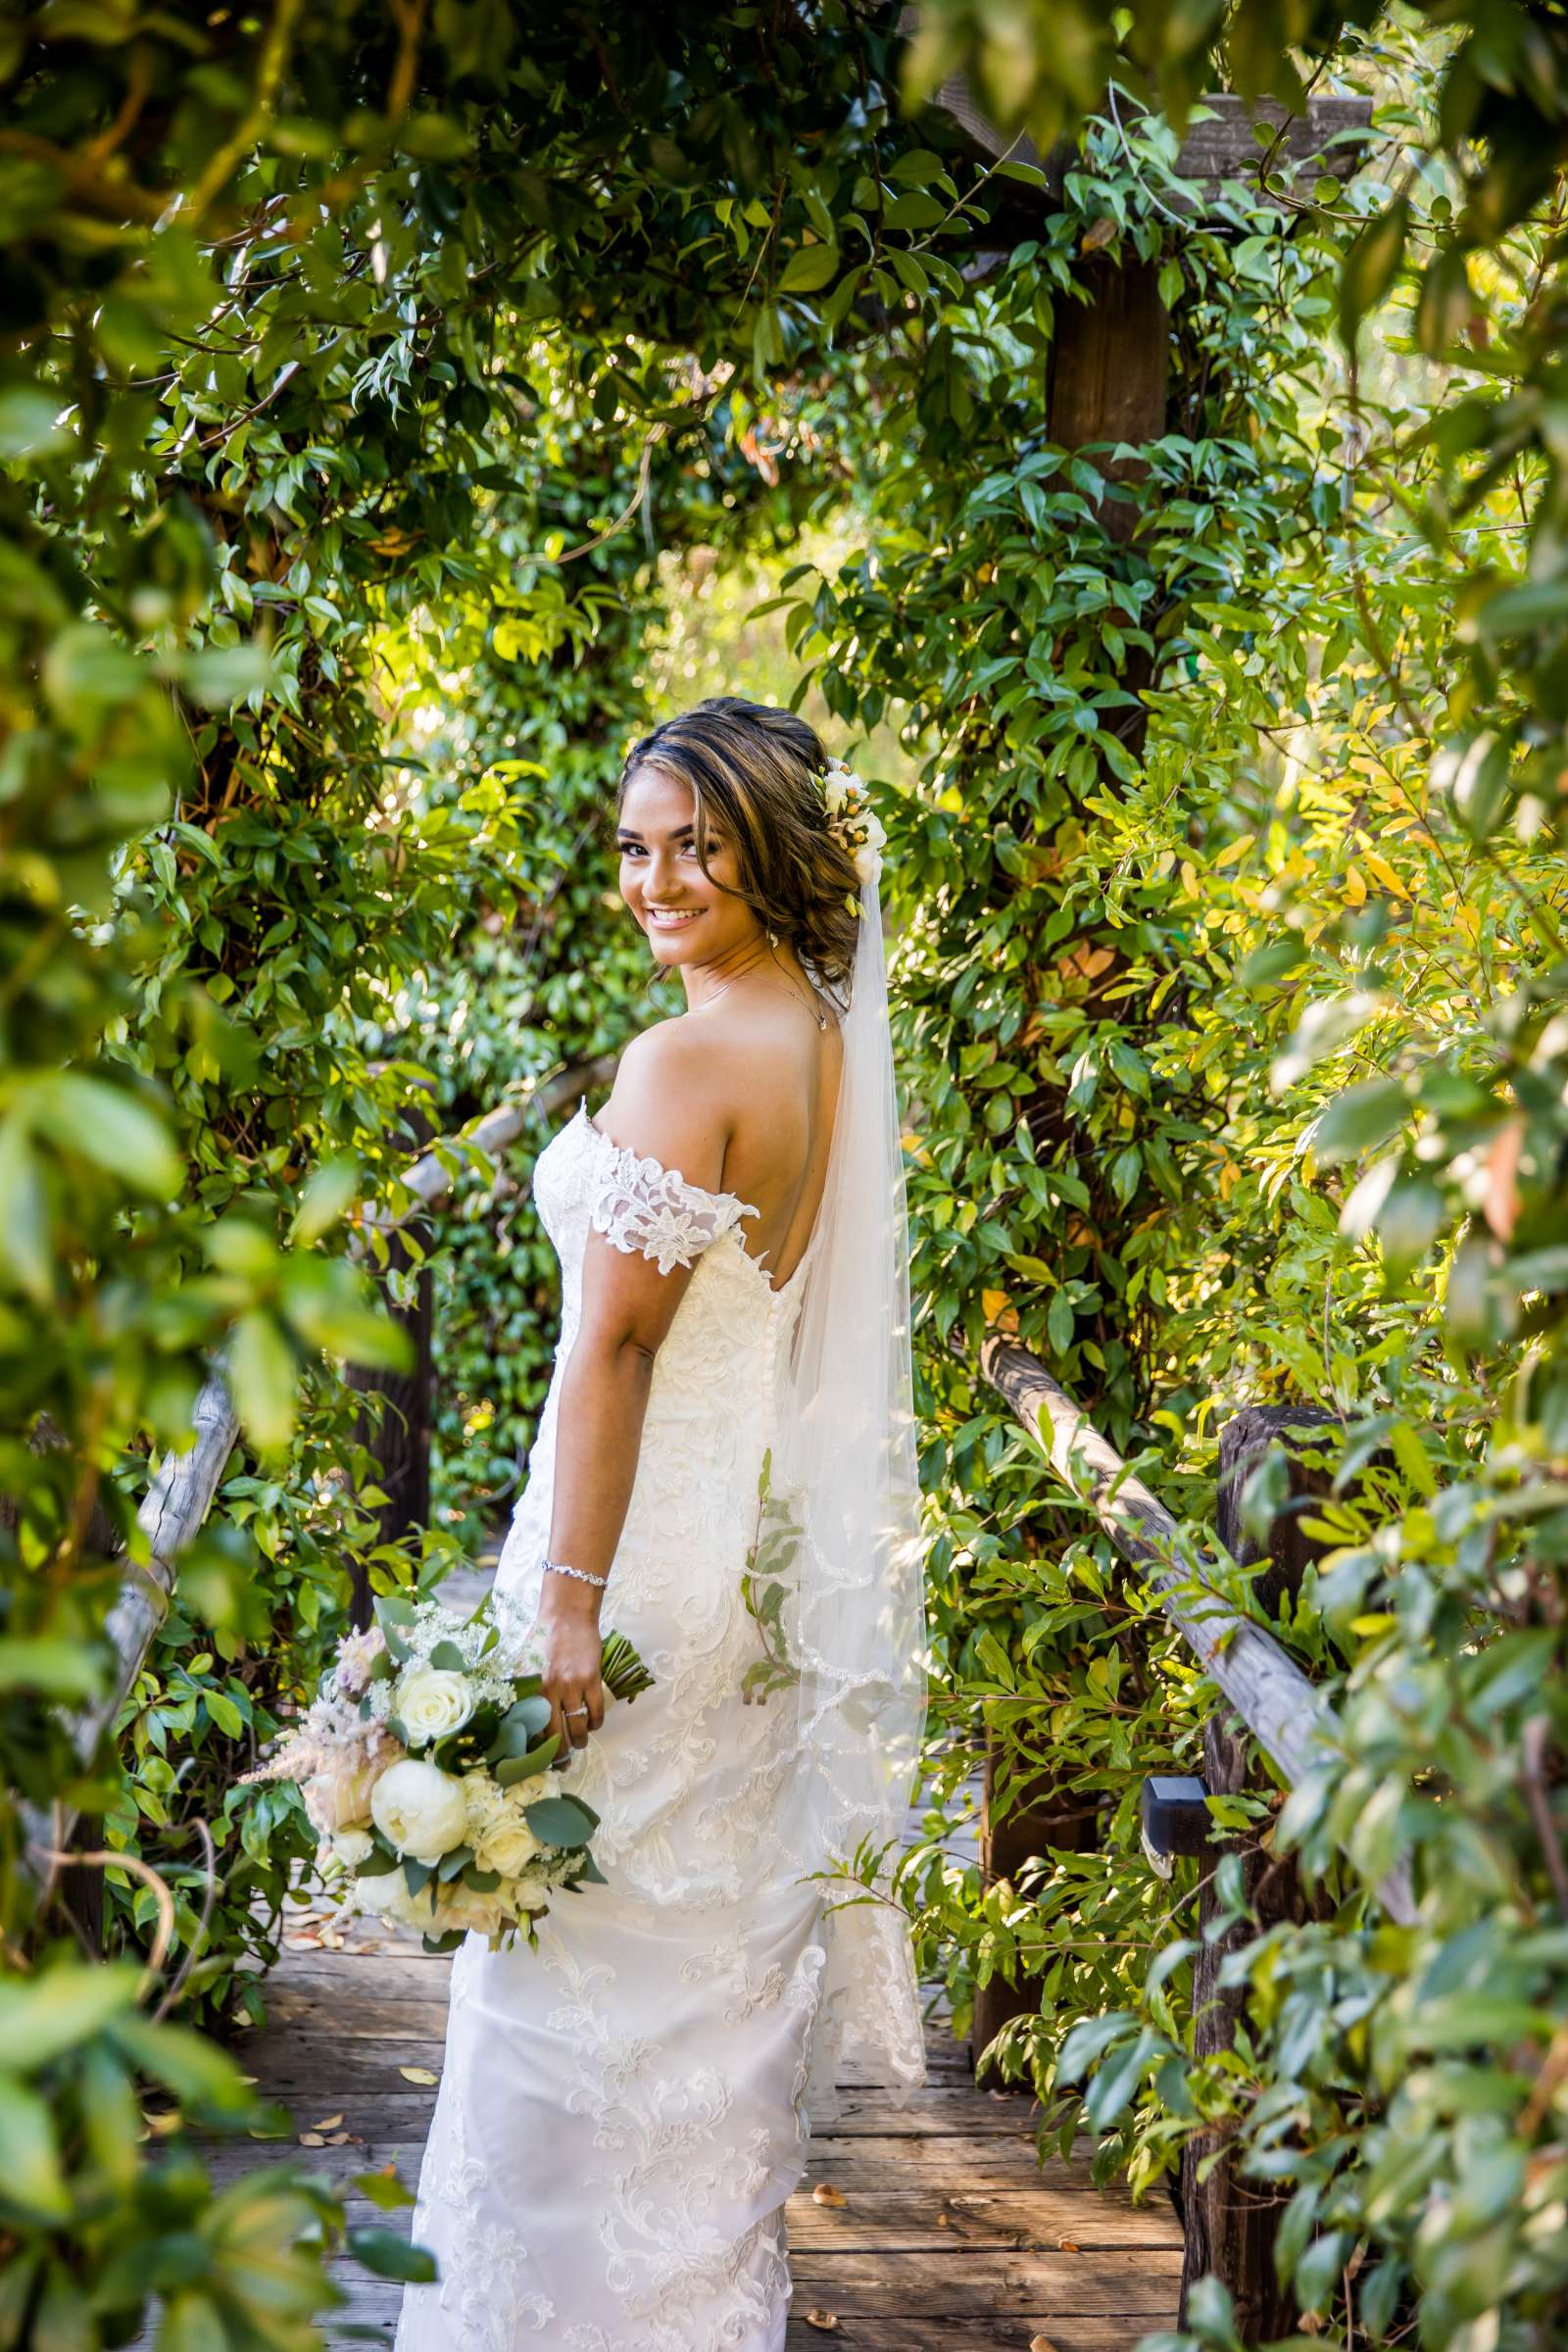 Ethereal Gardens Wedding, Danielle and Ben Wedding Photo #5 by True Photography